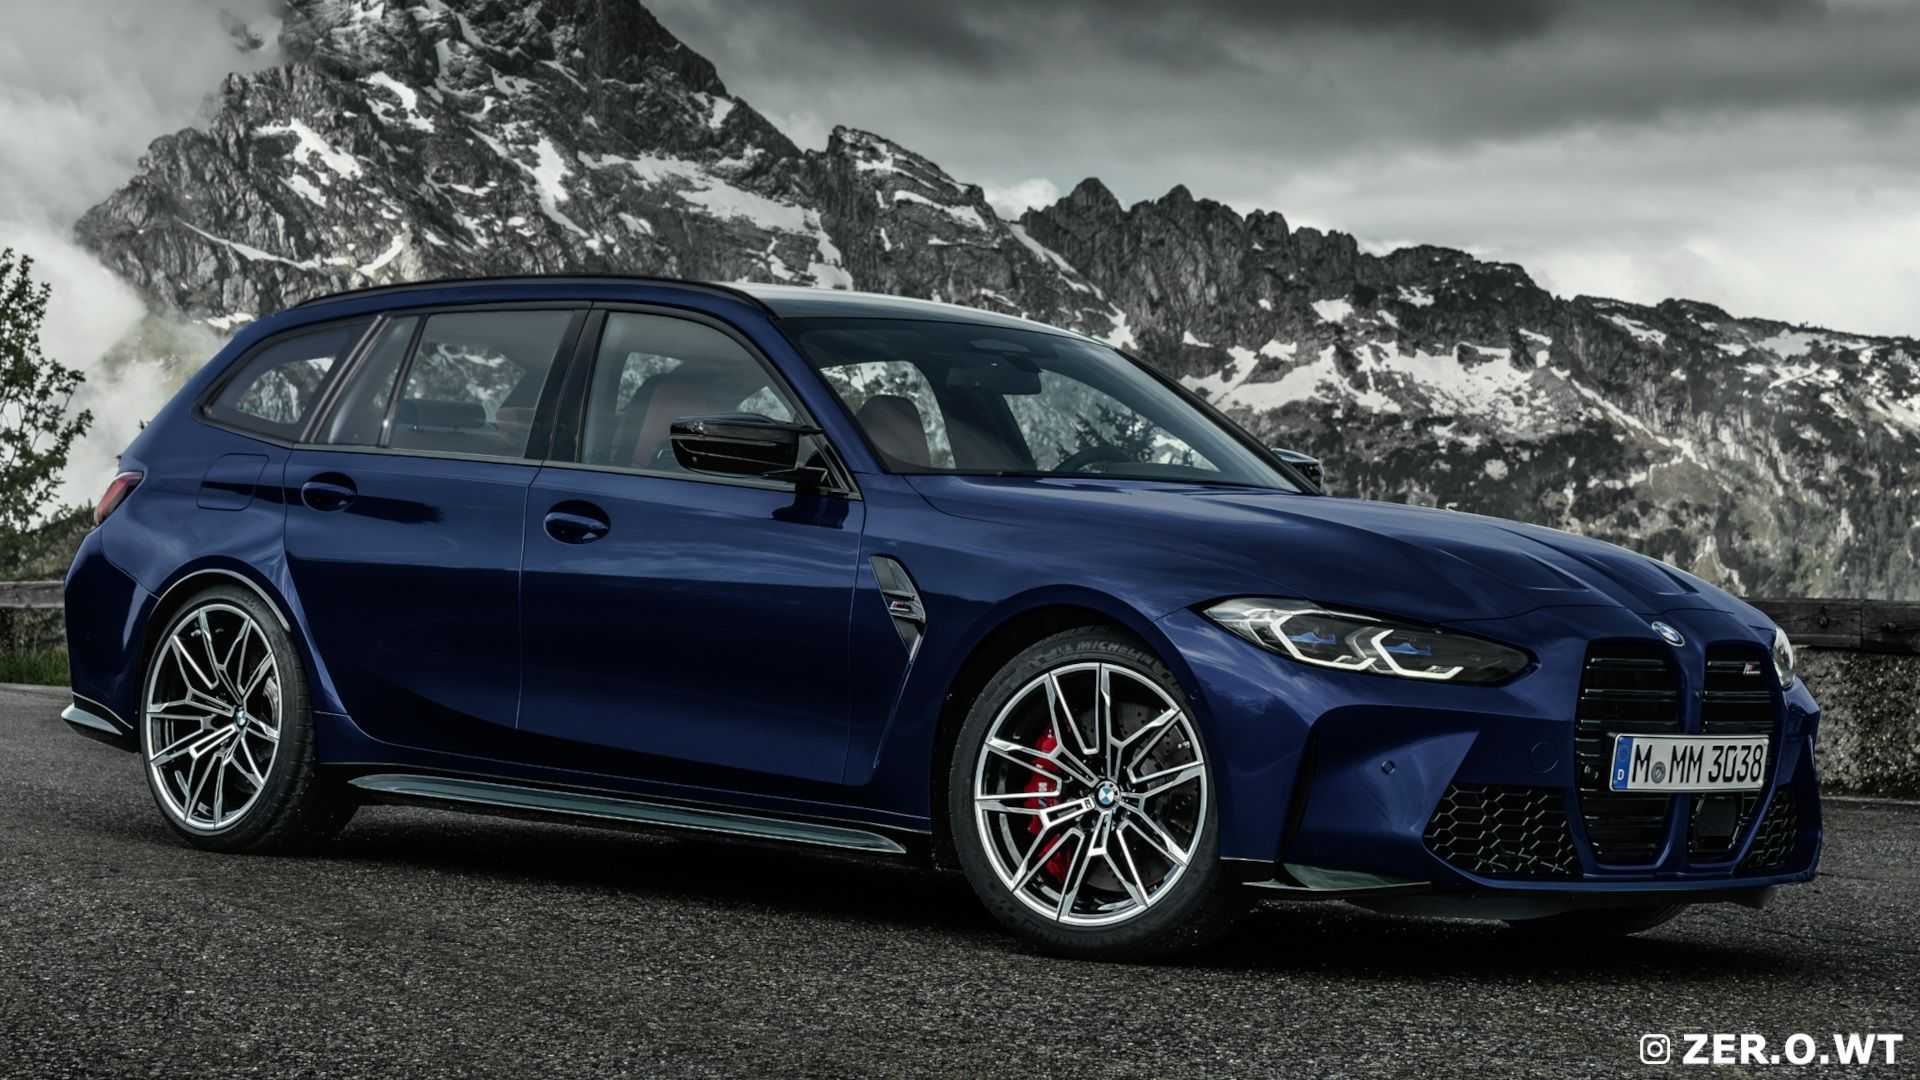 m3-touring-color-render-8